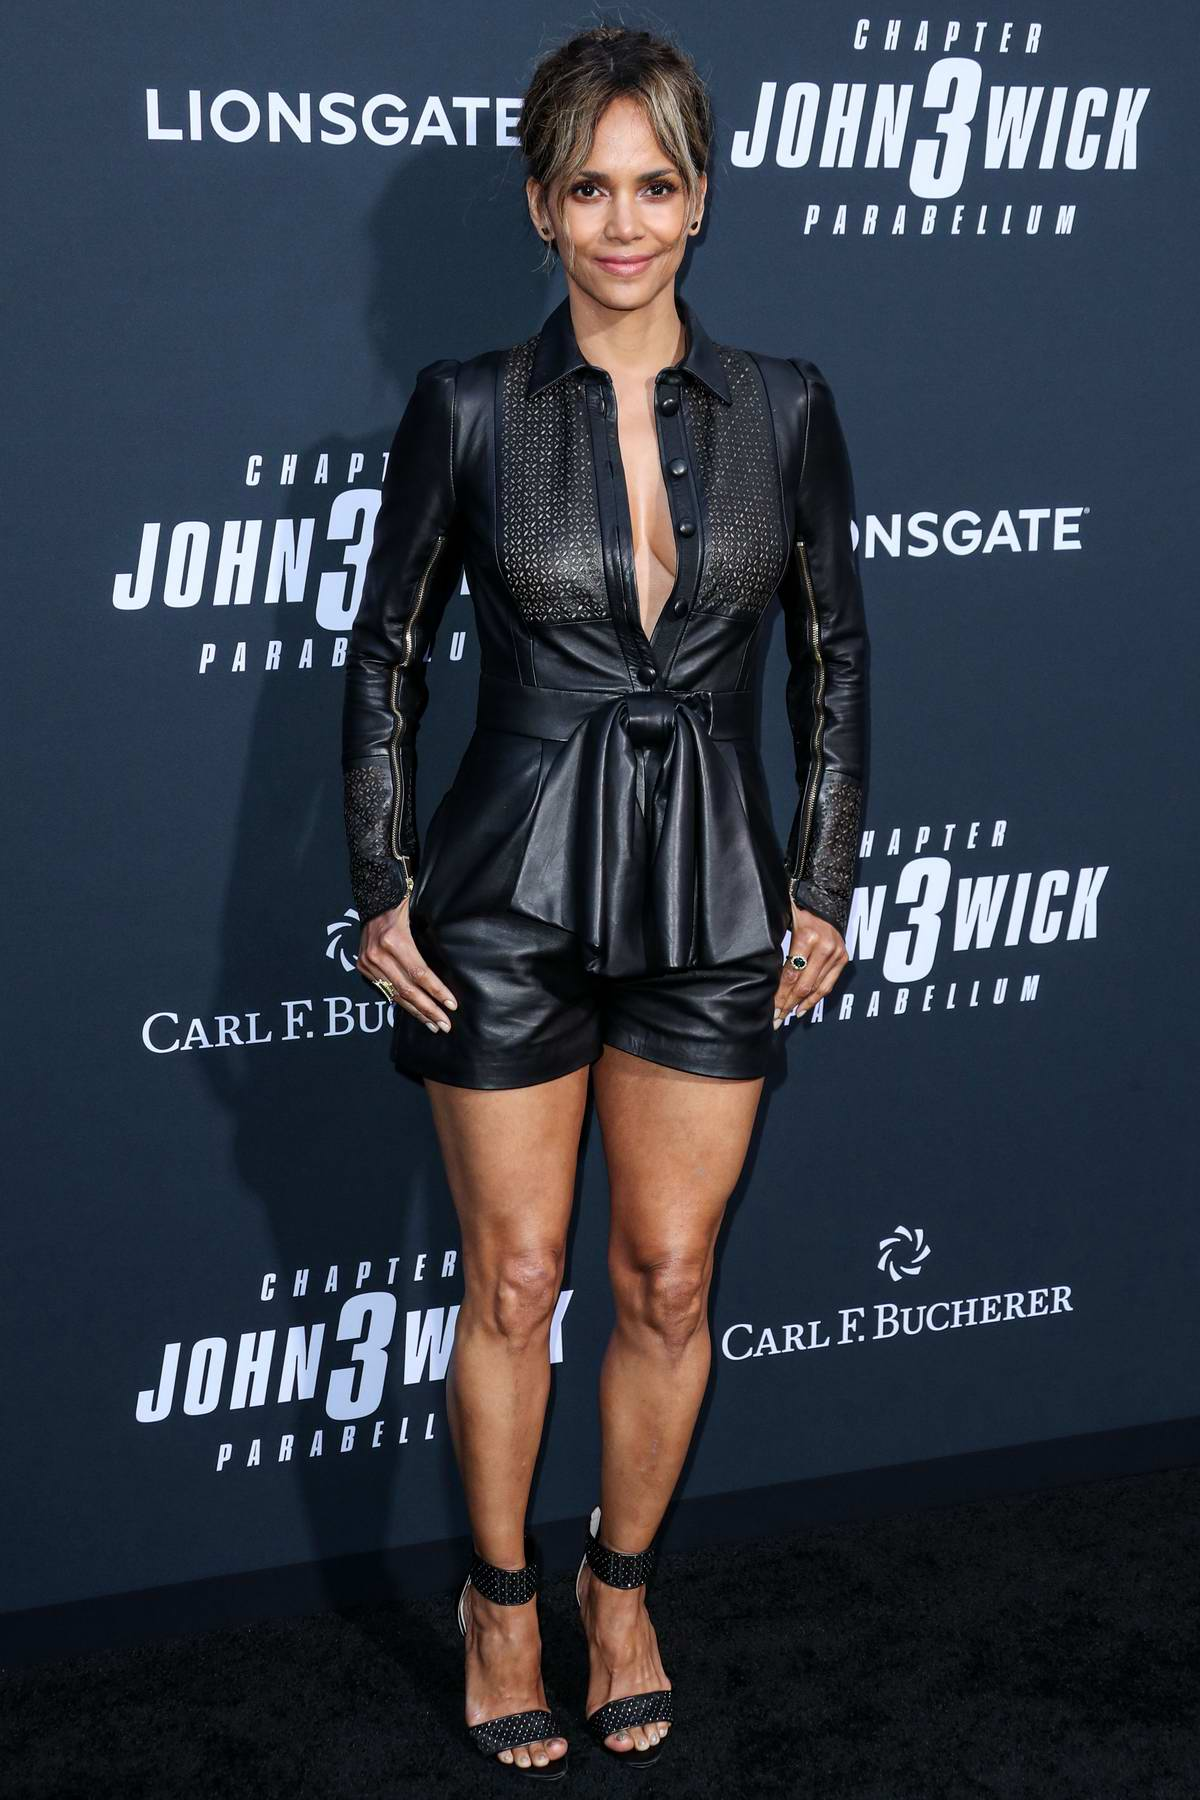 Halle Berry attends 'John Wick: Chapter 3 - Parabellum' premiere at TCL Chinese Theatre in Hollywood, California